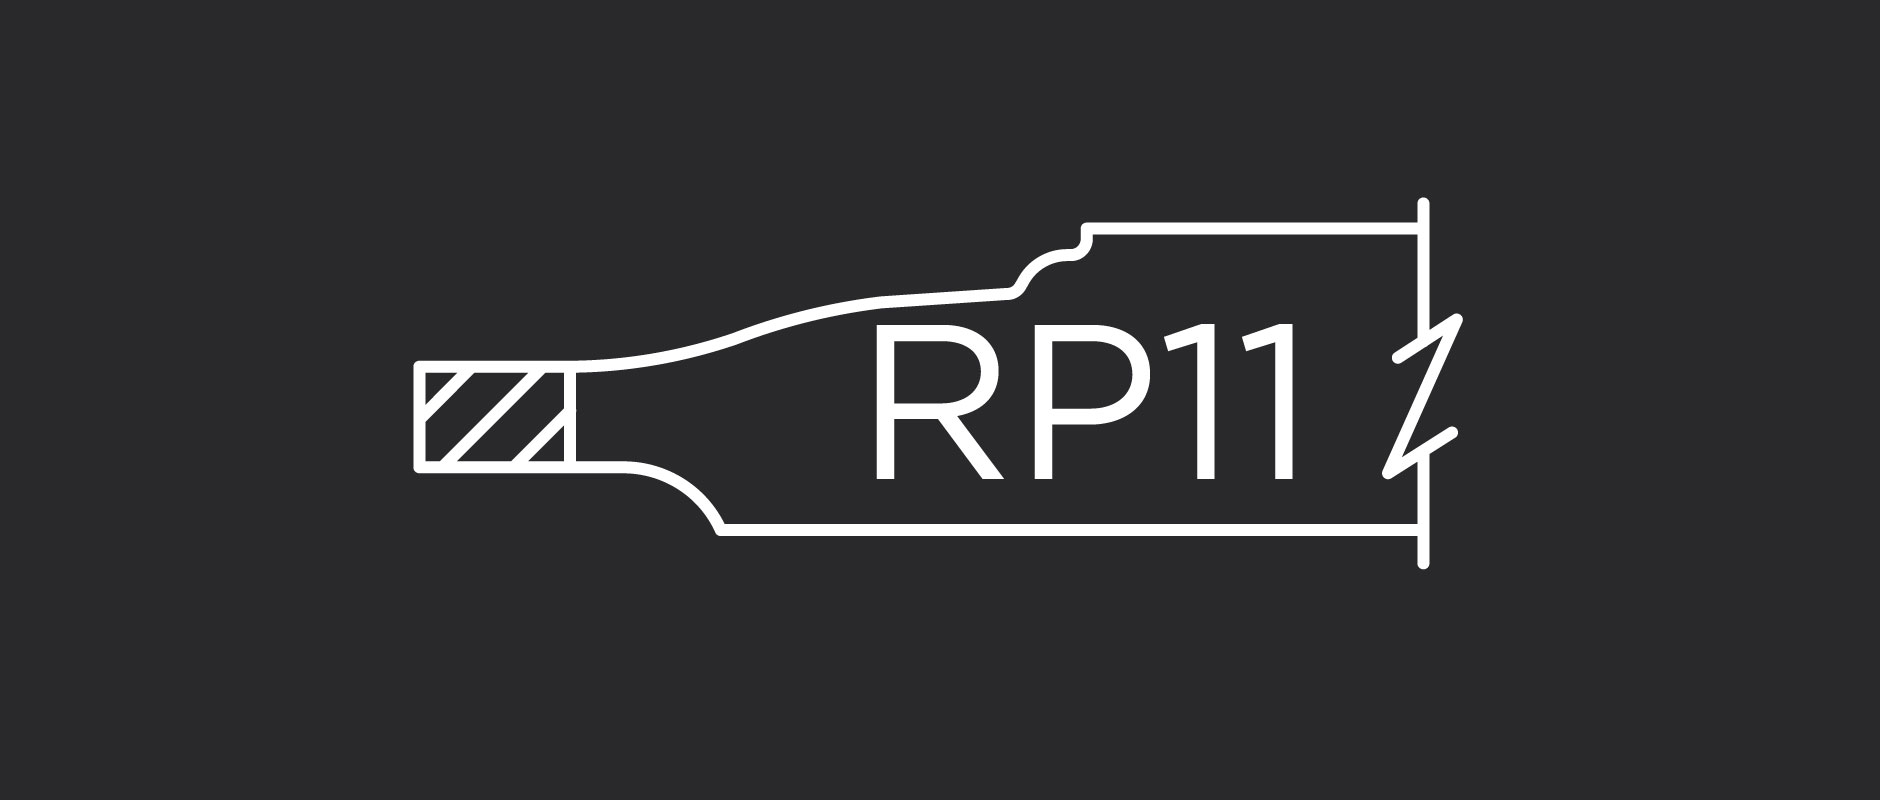 RP11 raised panel profile